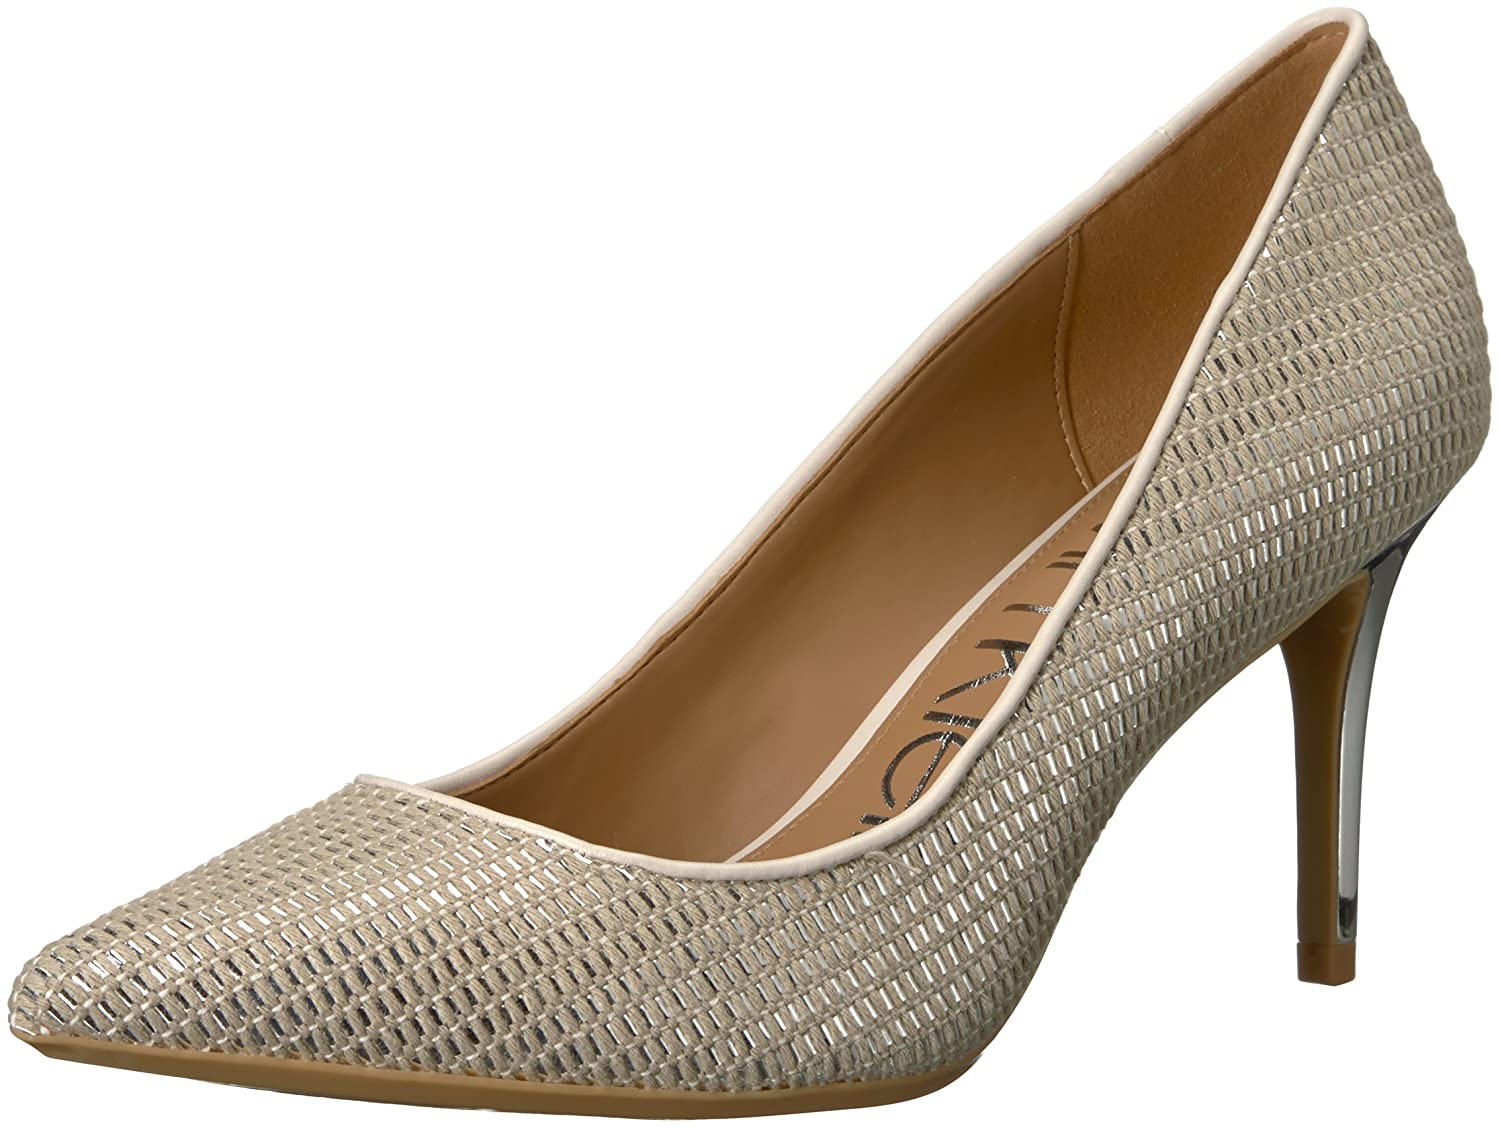 Calvin Klein Women's Gayle Pump B077J5DSSM 8.5 B(M) US|Natural/Silver/Soft White